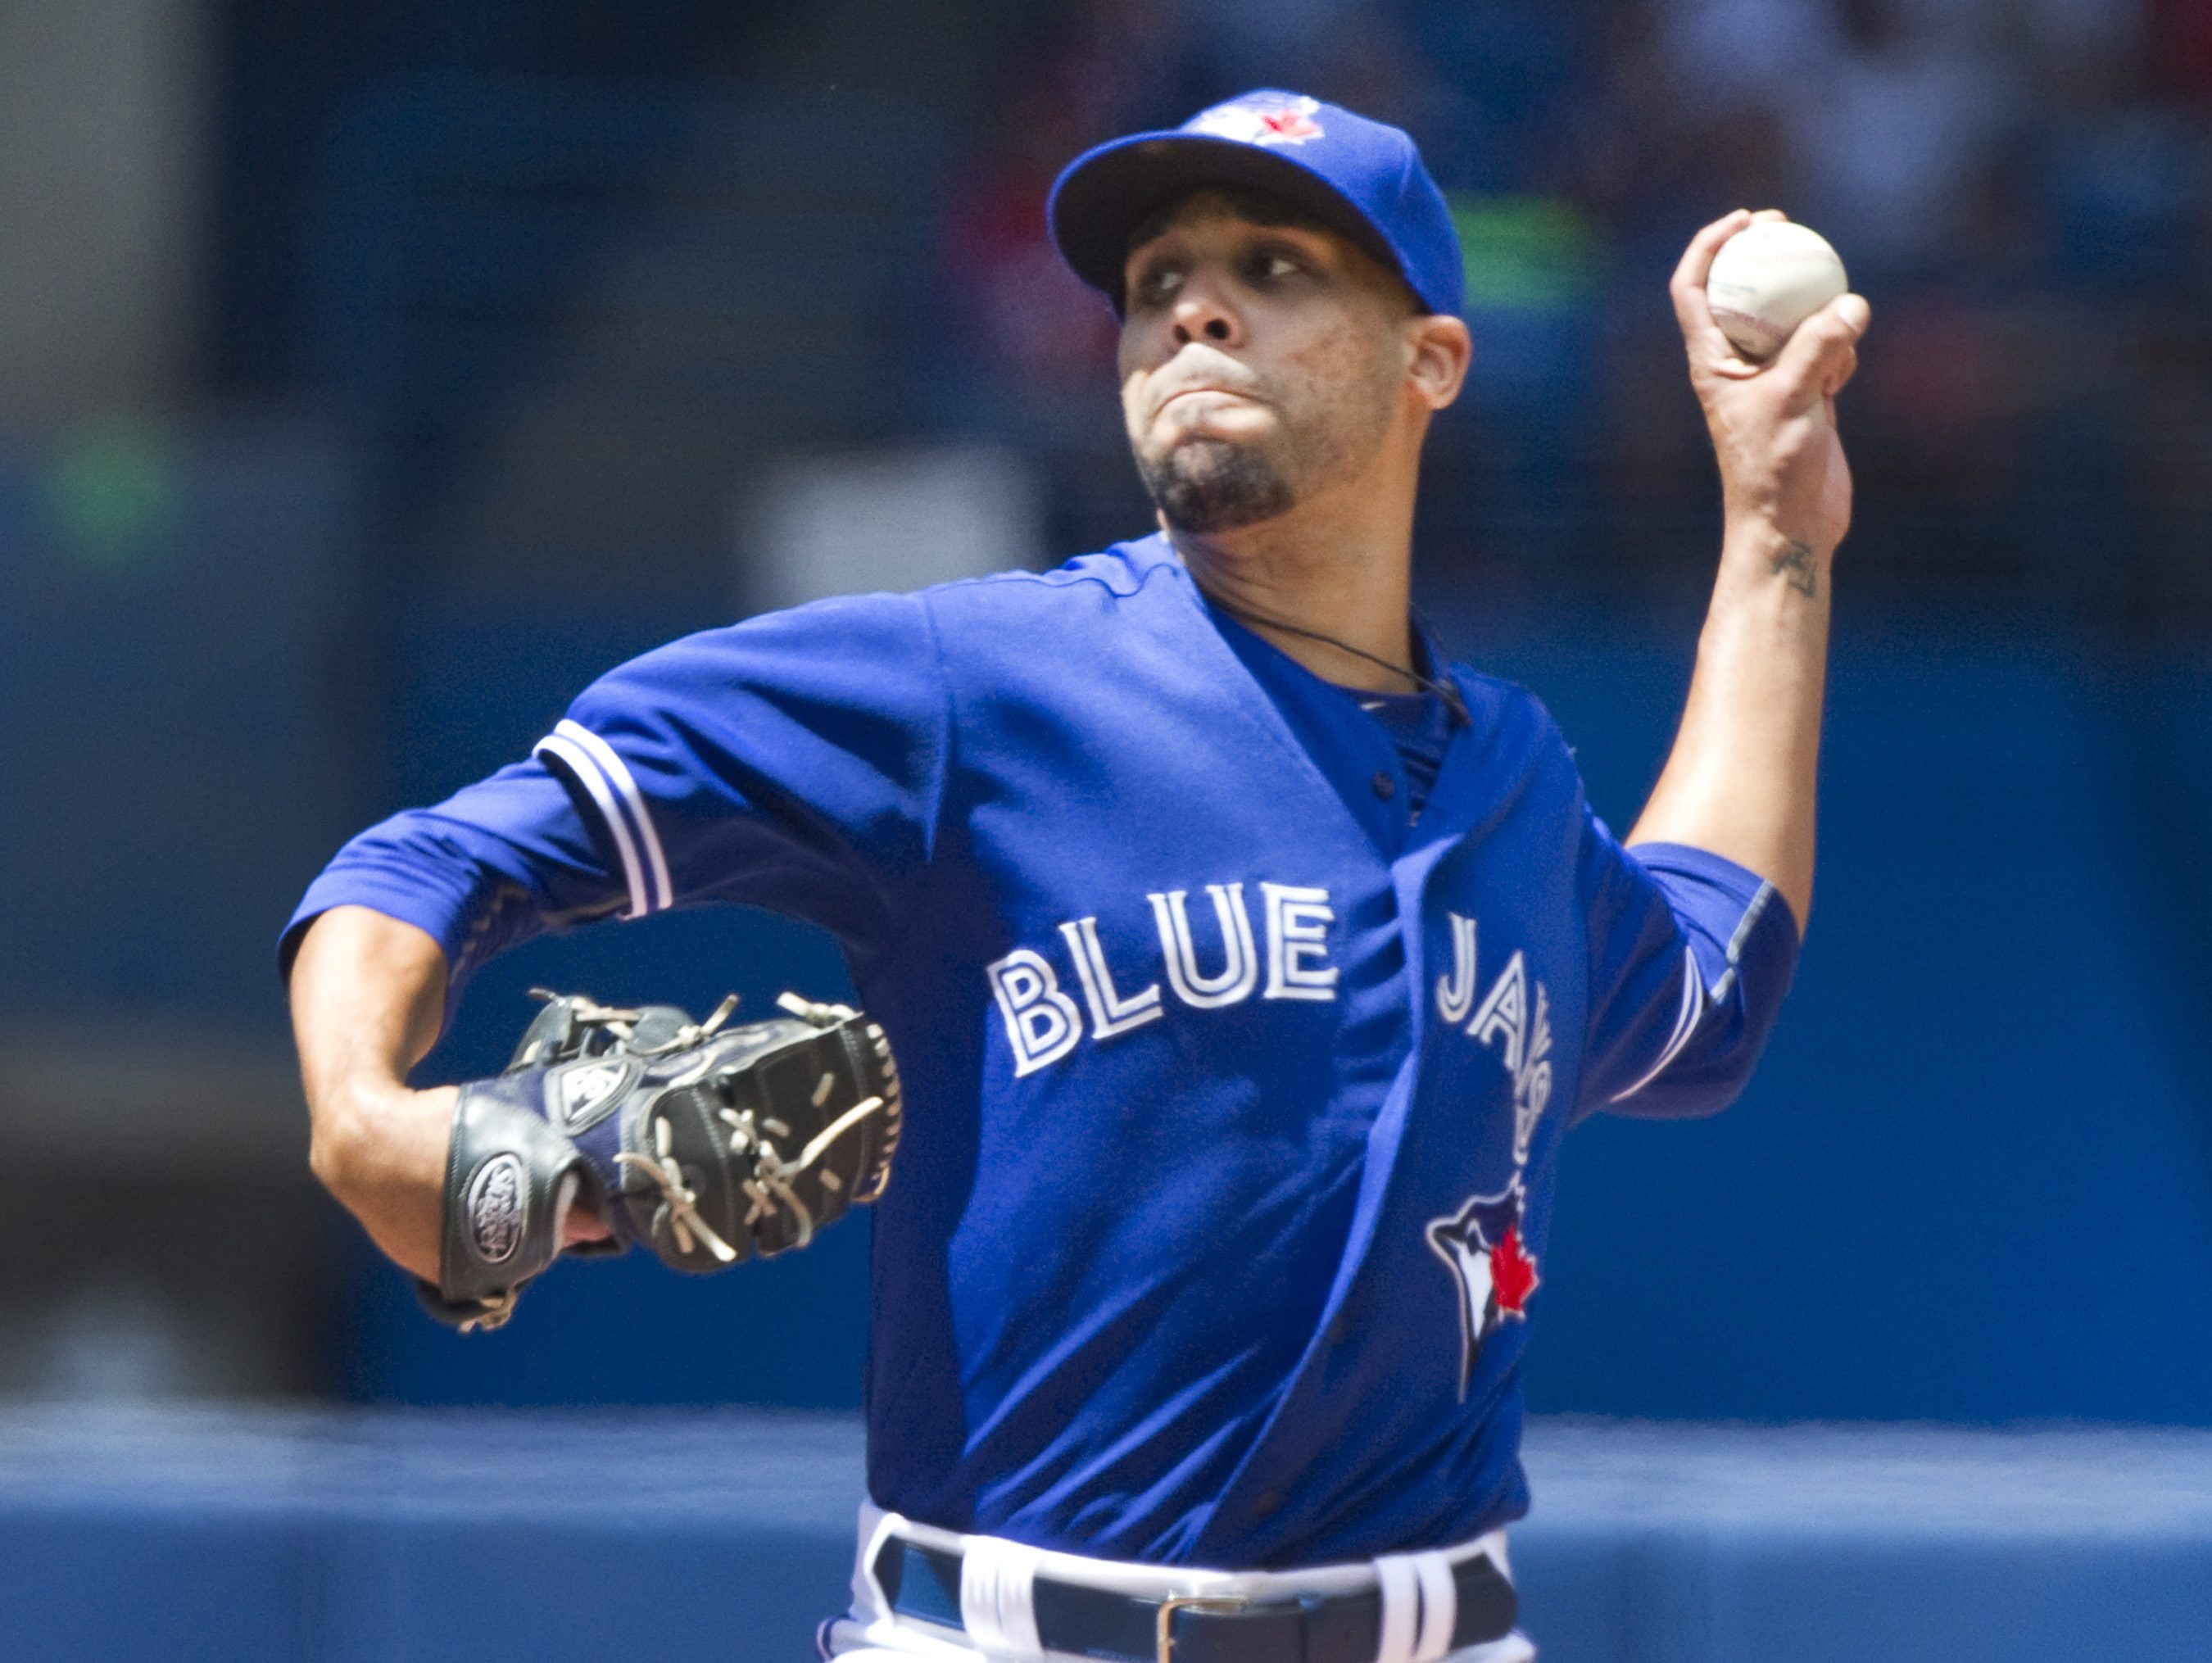 Toronto Blue Jays starting pitcher David Price throws against the Minnesota Twins during the second inning of a baseball game in Toronto on Monday, Aug.  3, 2015. (Fred Thornhill/The Canadian Press via AP)